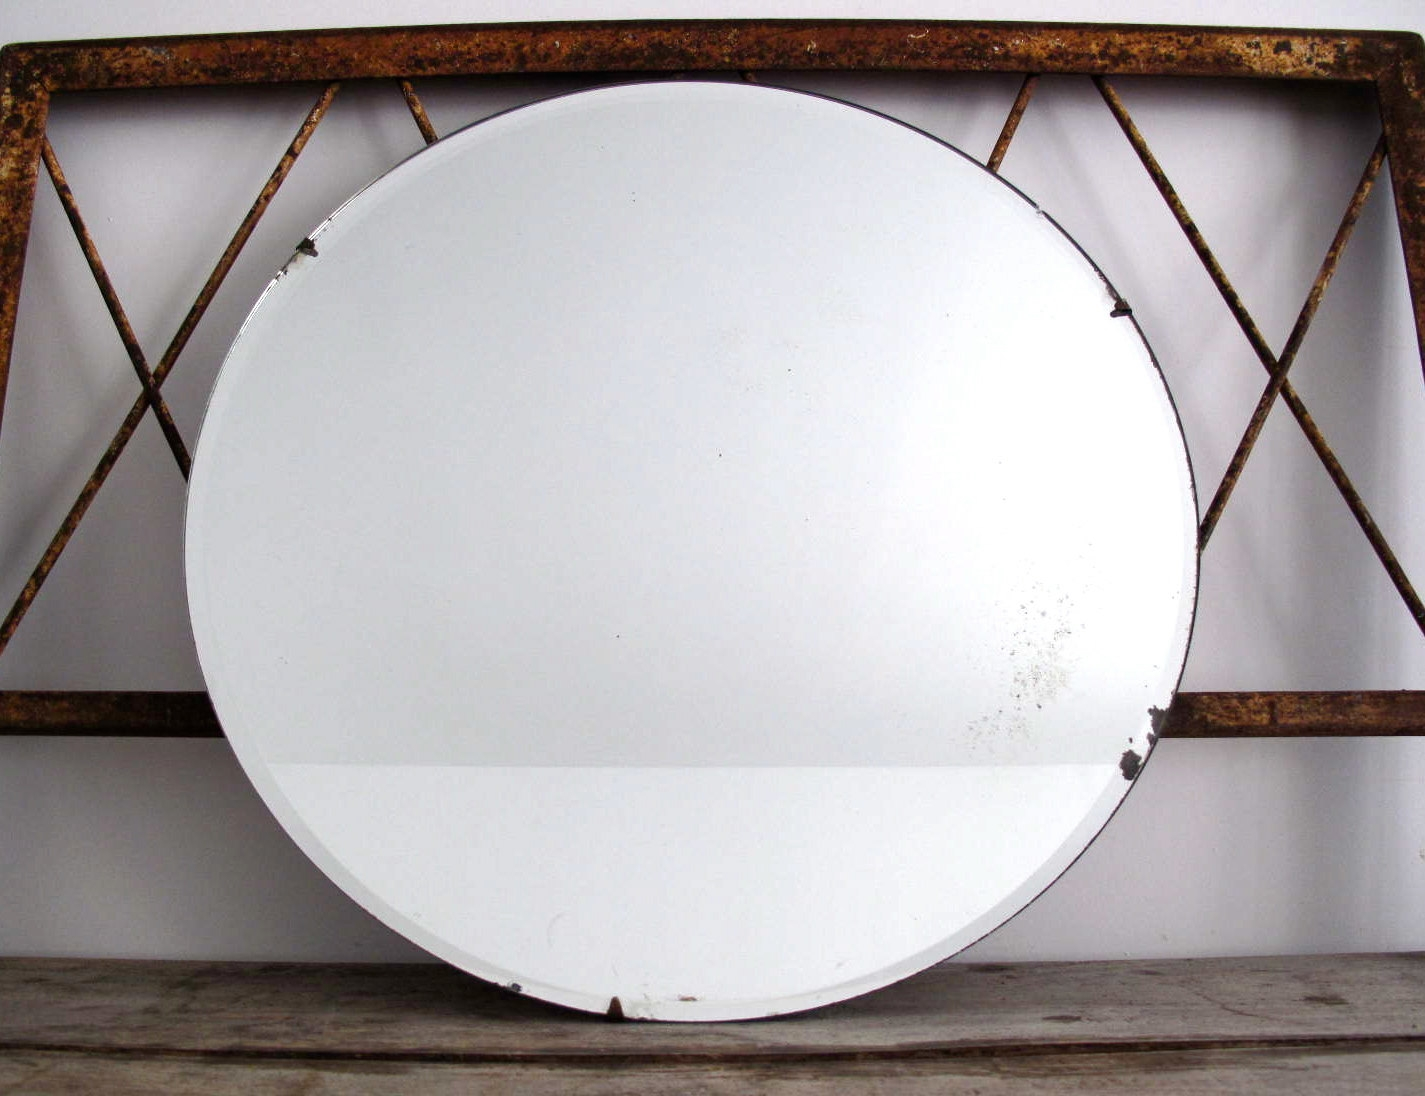 New Antique Wall Mirror On Furniture With Vintage Round Mirror With Antique Round Mirrors (View 9 of 15)